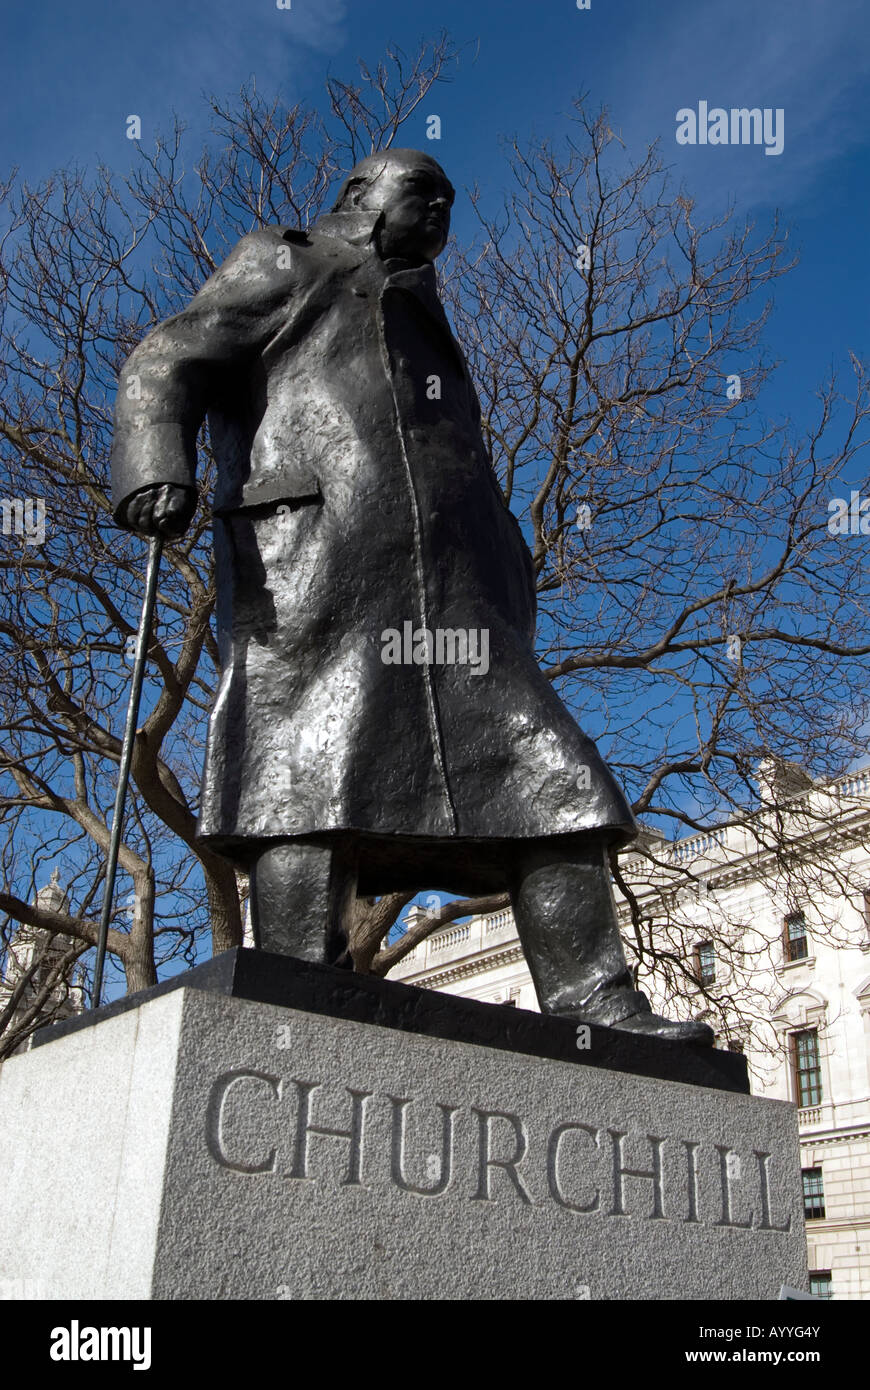 Statue of Winston Churchill in Parliament Square, London, England, UK - Stock Image